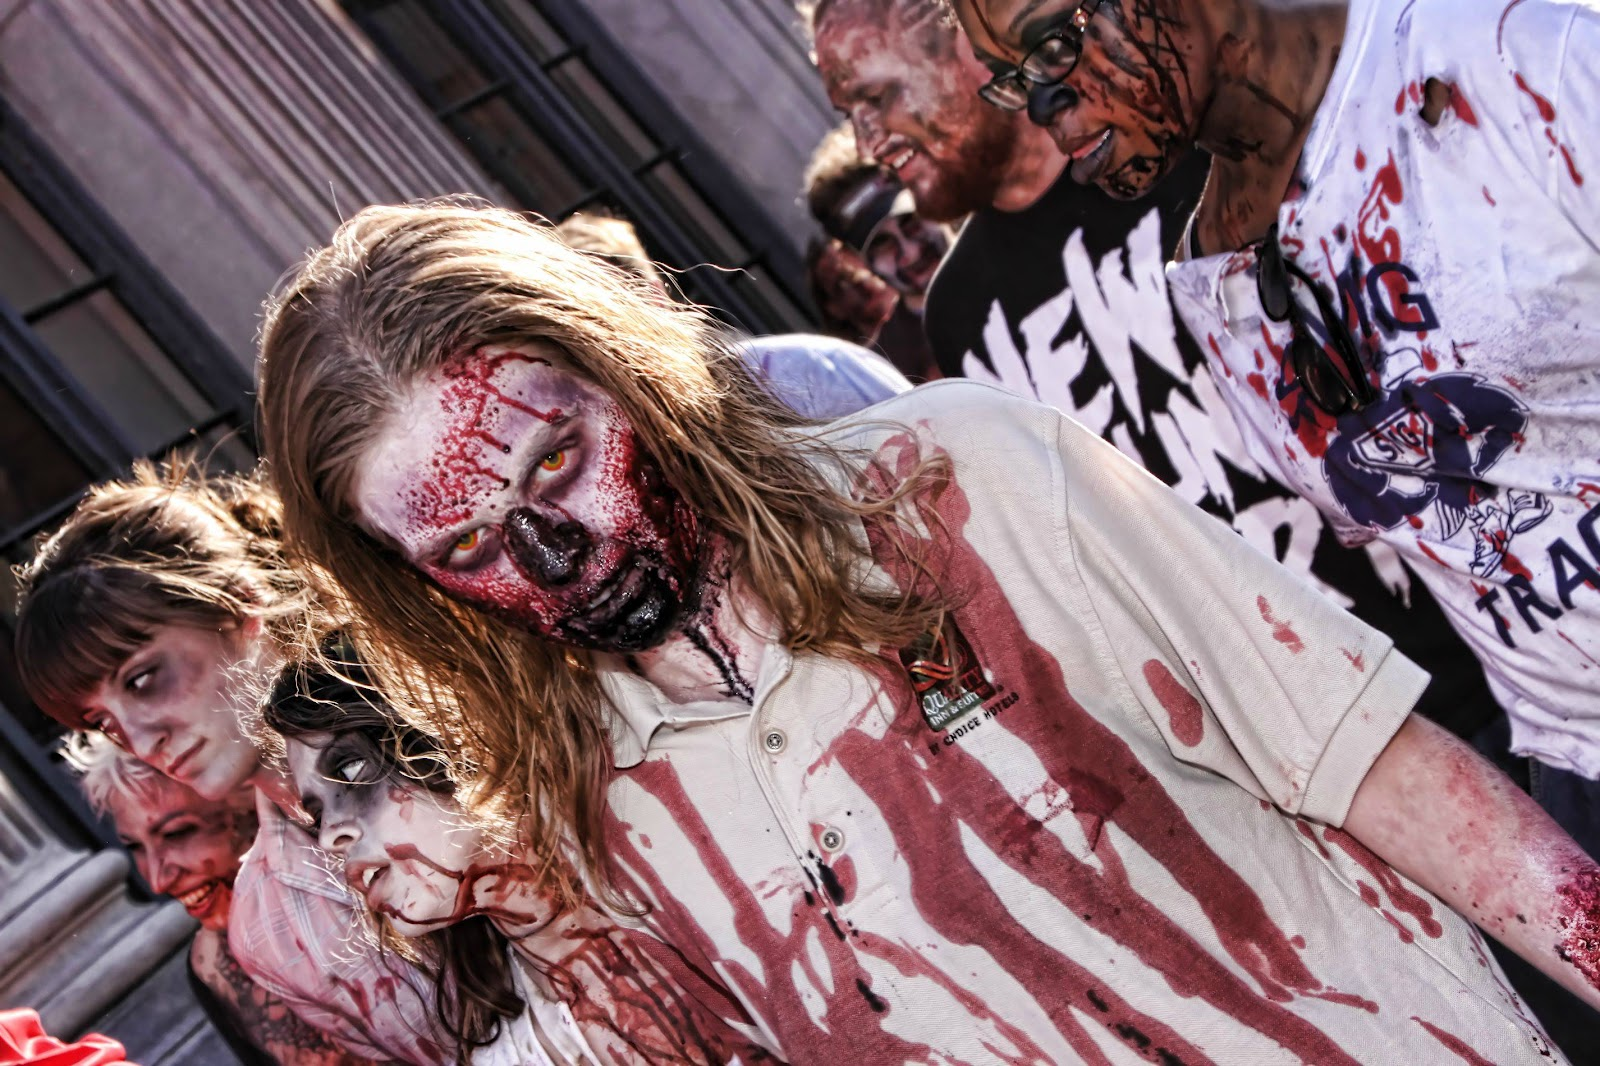 1dCAH And for the next couple days we will be posting nothing but amateur zombie ...